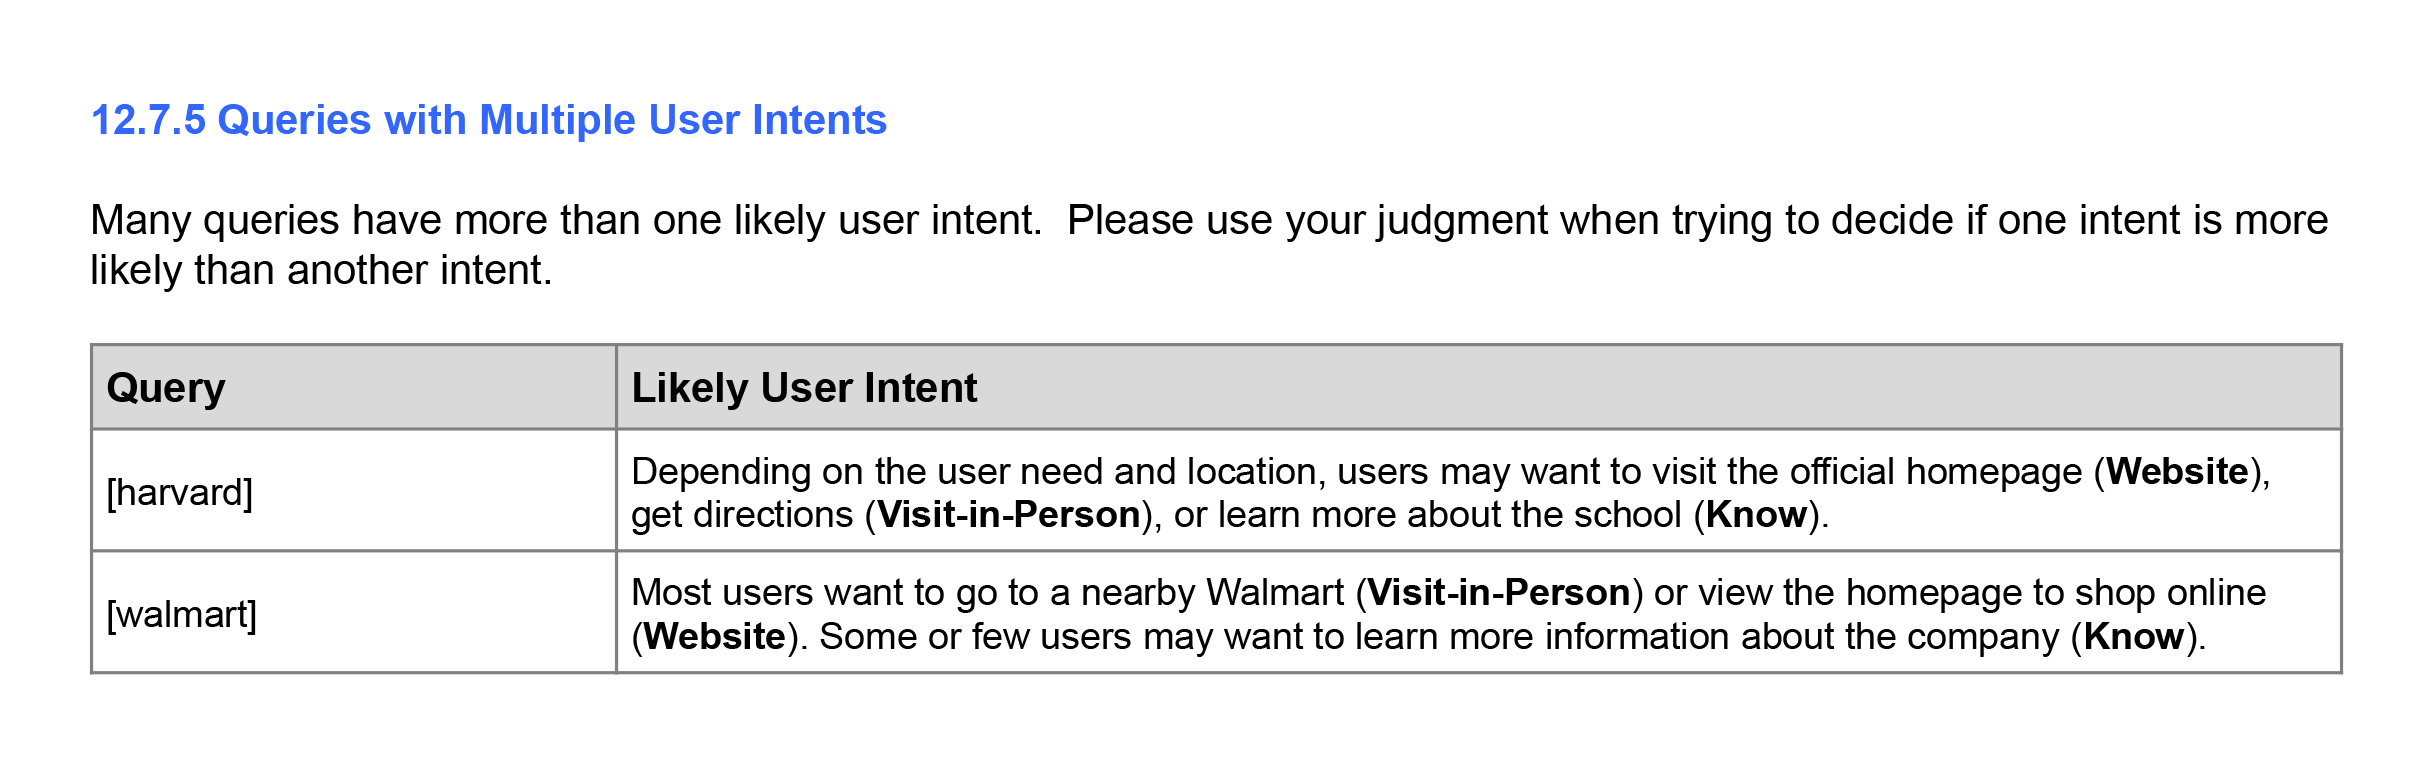 Queries with multiple user intents